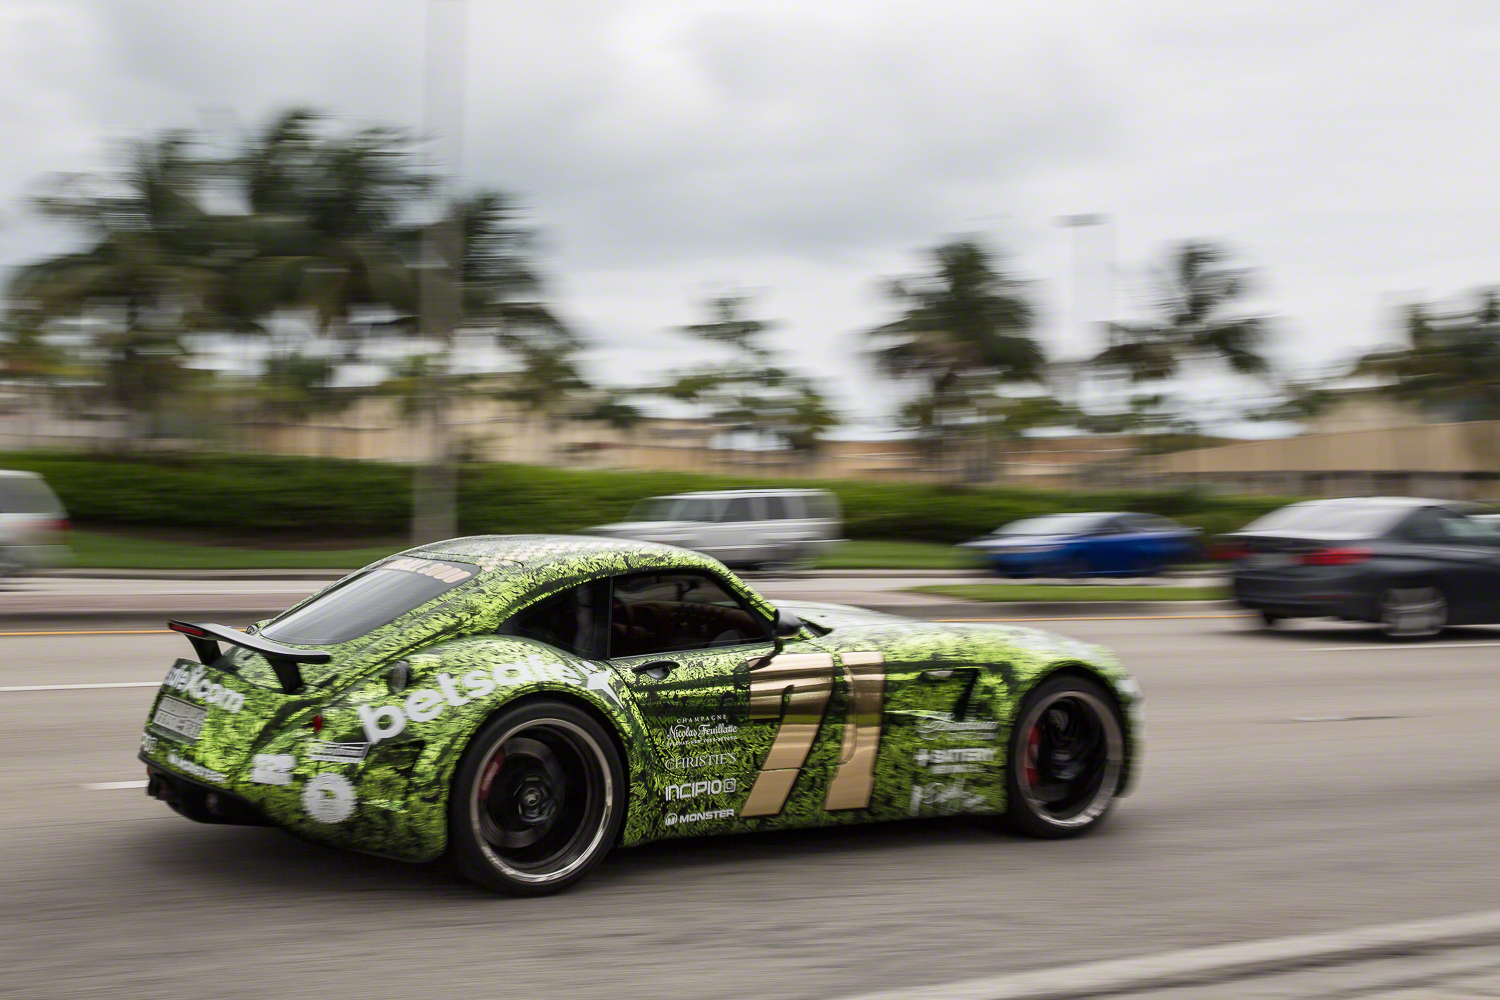 SMoores_14-06-03_Gumball3000-Miami_0072.jpg